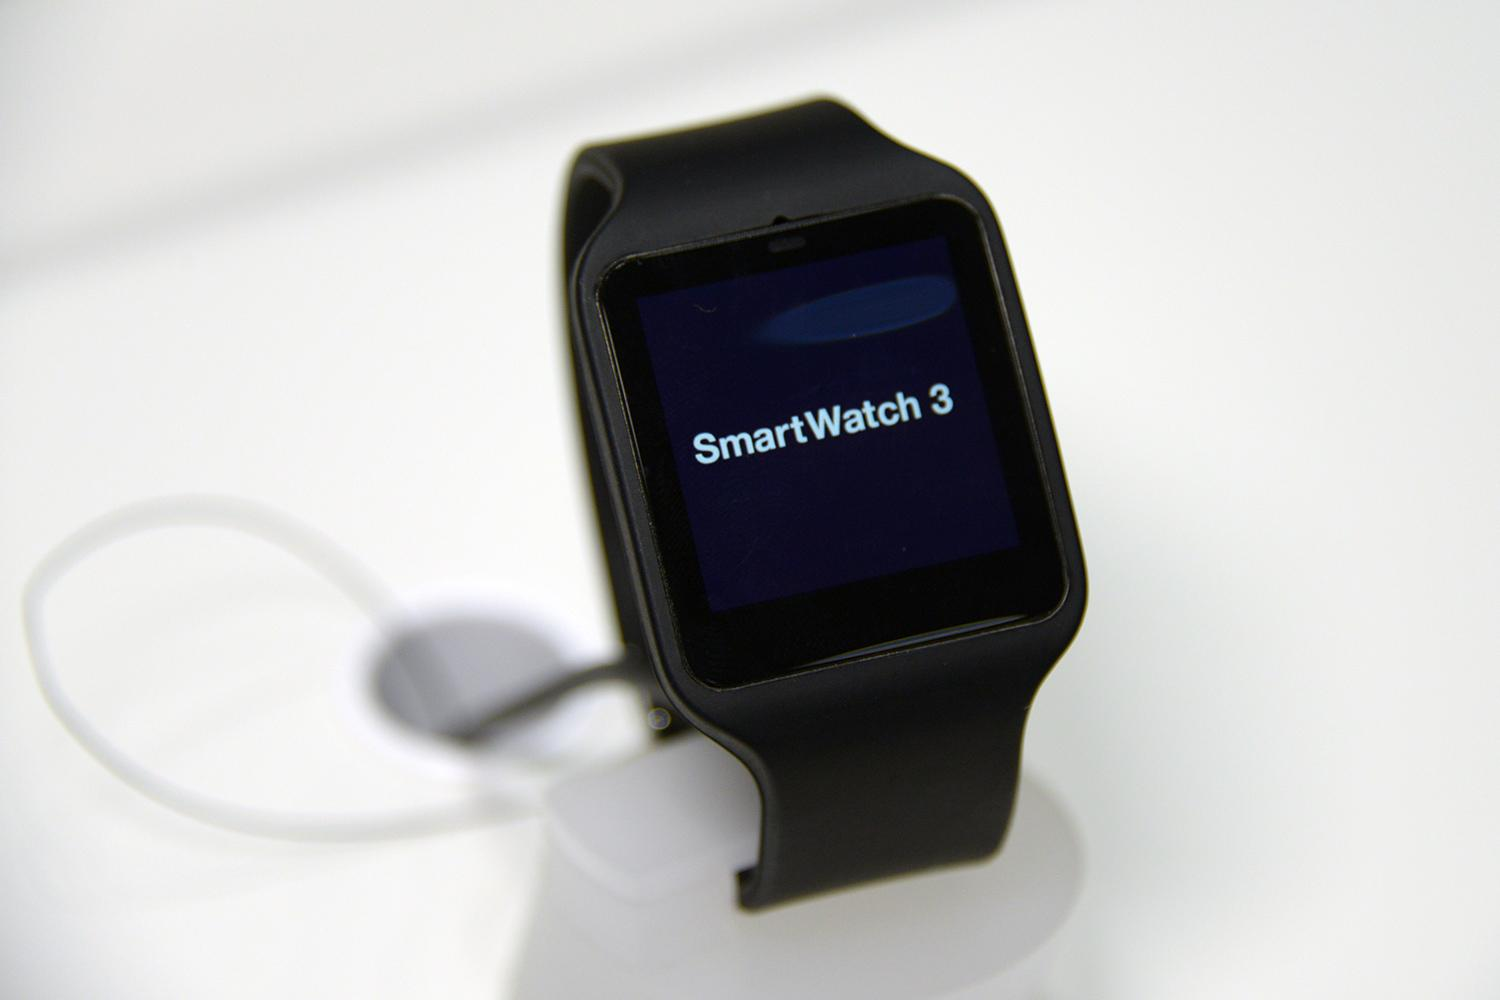 sony smartwatch 3 now available via google play for 250 digital trends. Black Bedroom Furniture Sets. Home Design Ideas